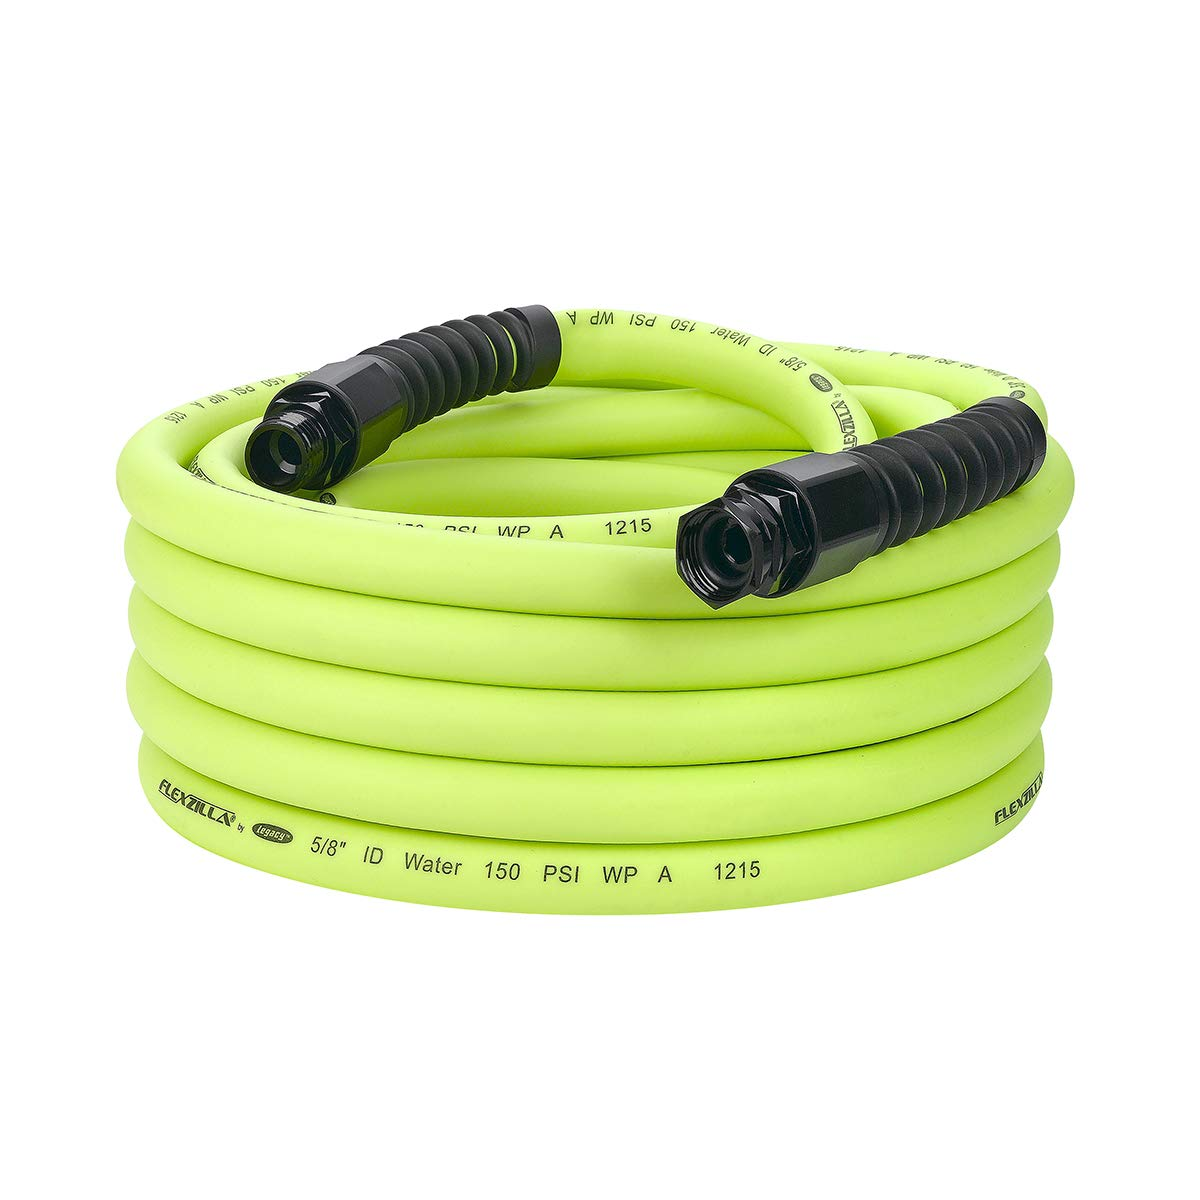 Flexzilla Pro Water Hose with Reusable Fittings, 5/8 in. x 50 ft, Heavy Duty, Lightweight, Drinking Water Safe - HFZWP550 by Flexzilla (Image #1)